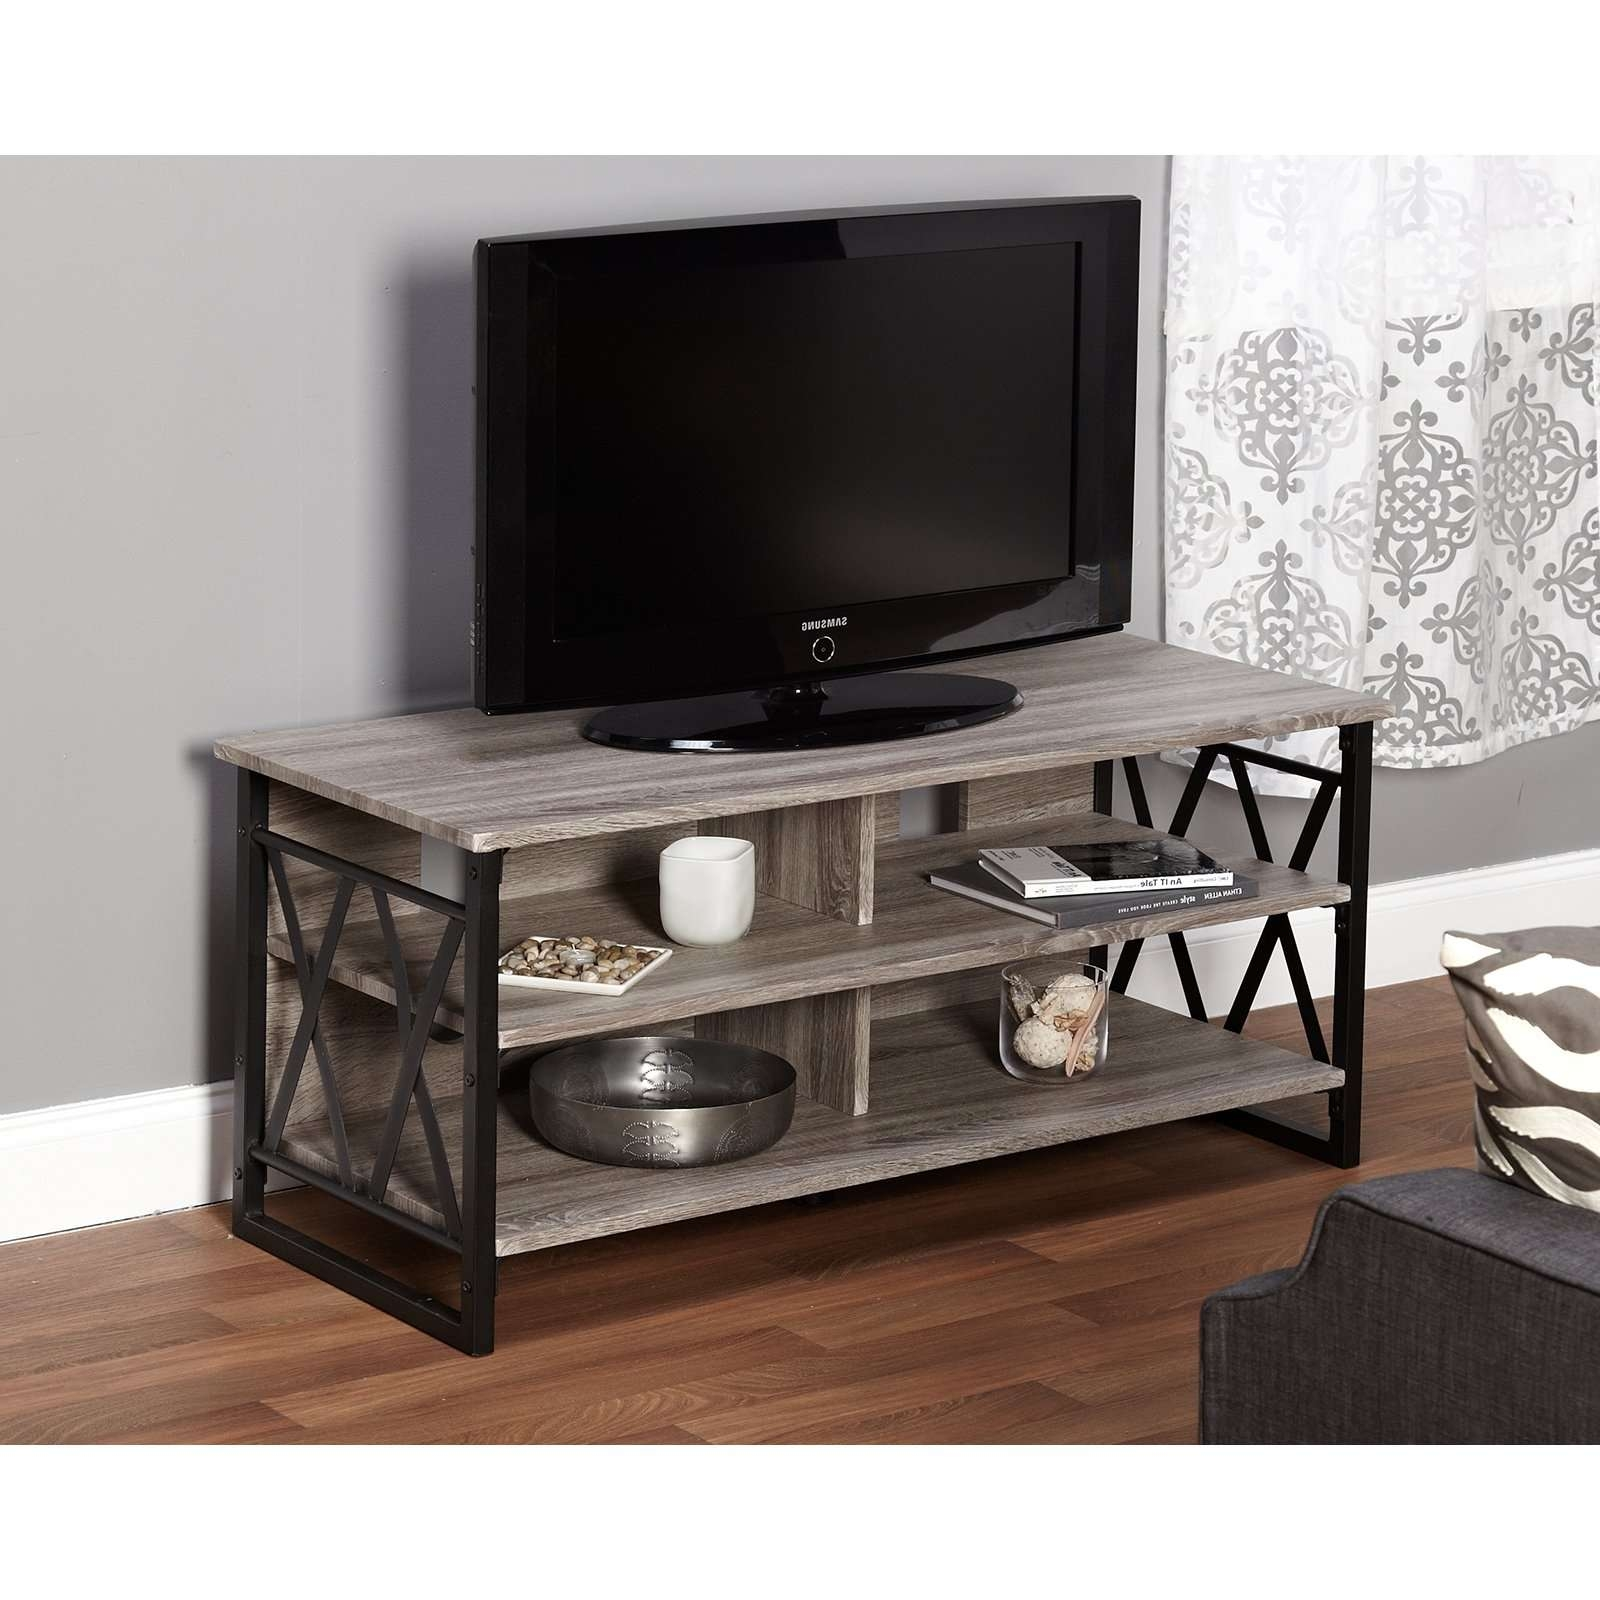 Belham Living Edison Reclaimed Wood Tv Stand | Hayneedle With Regard To Wood Tv Stands (View 3 of 15)